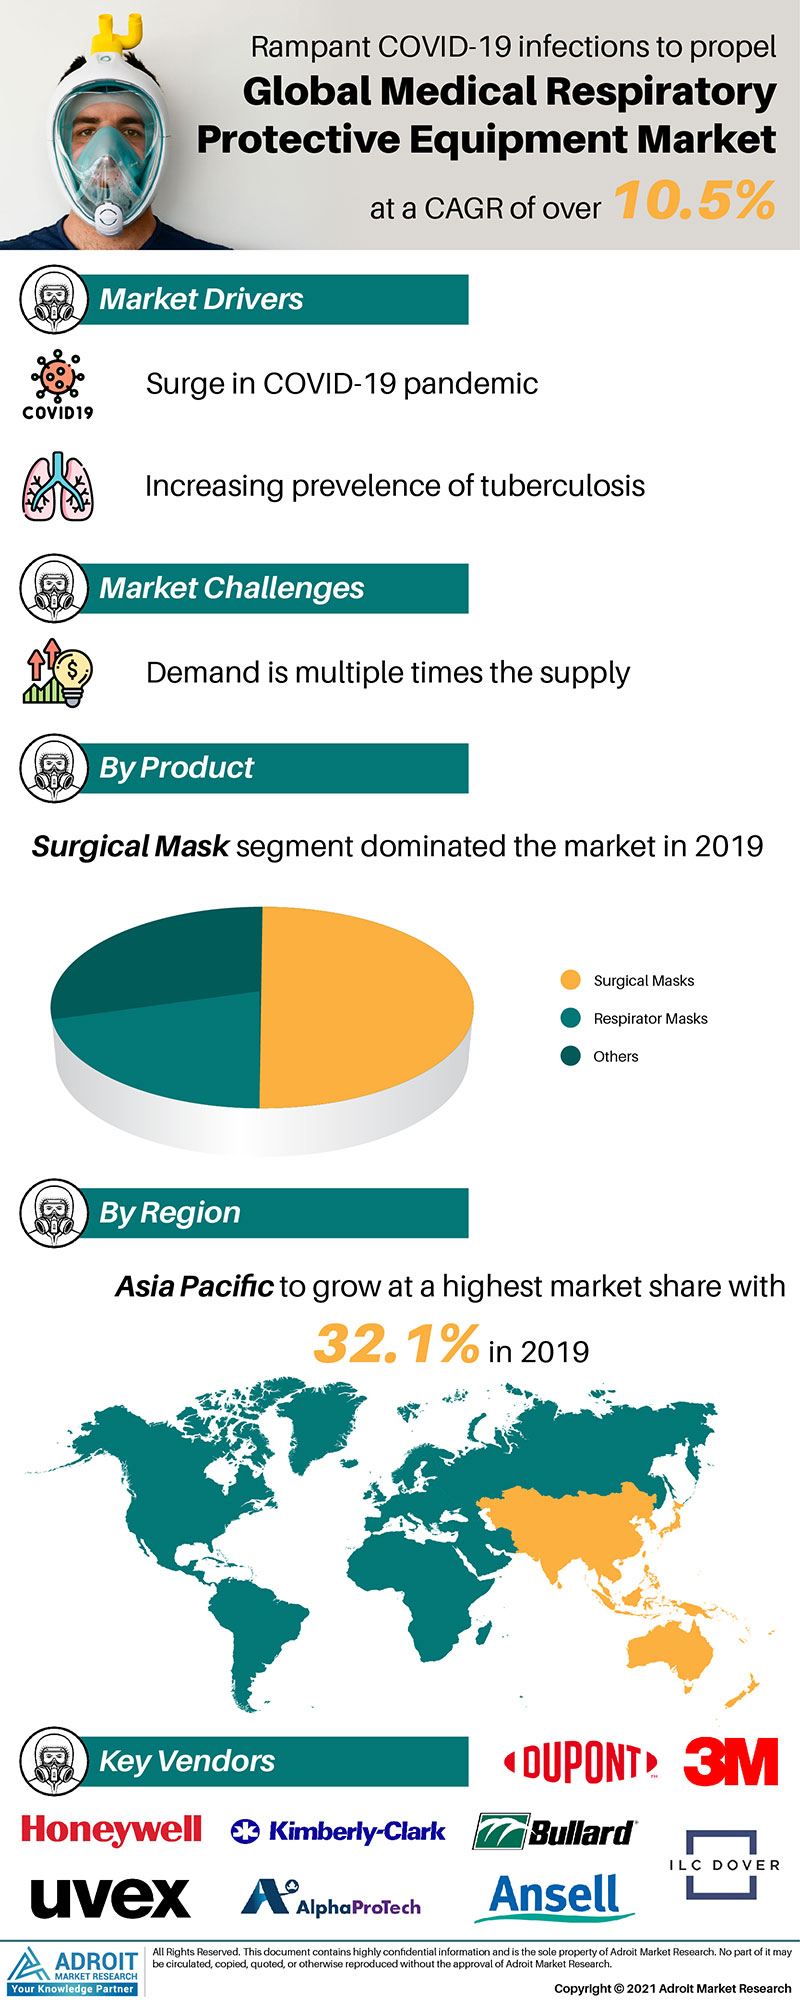 Medical Respiratory Protective Equipment Market Size 2017 By Application, Product, Region and Forecast 2019 to 2025